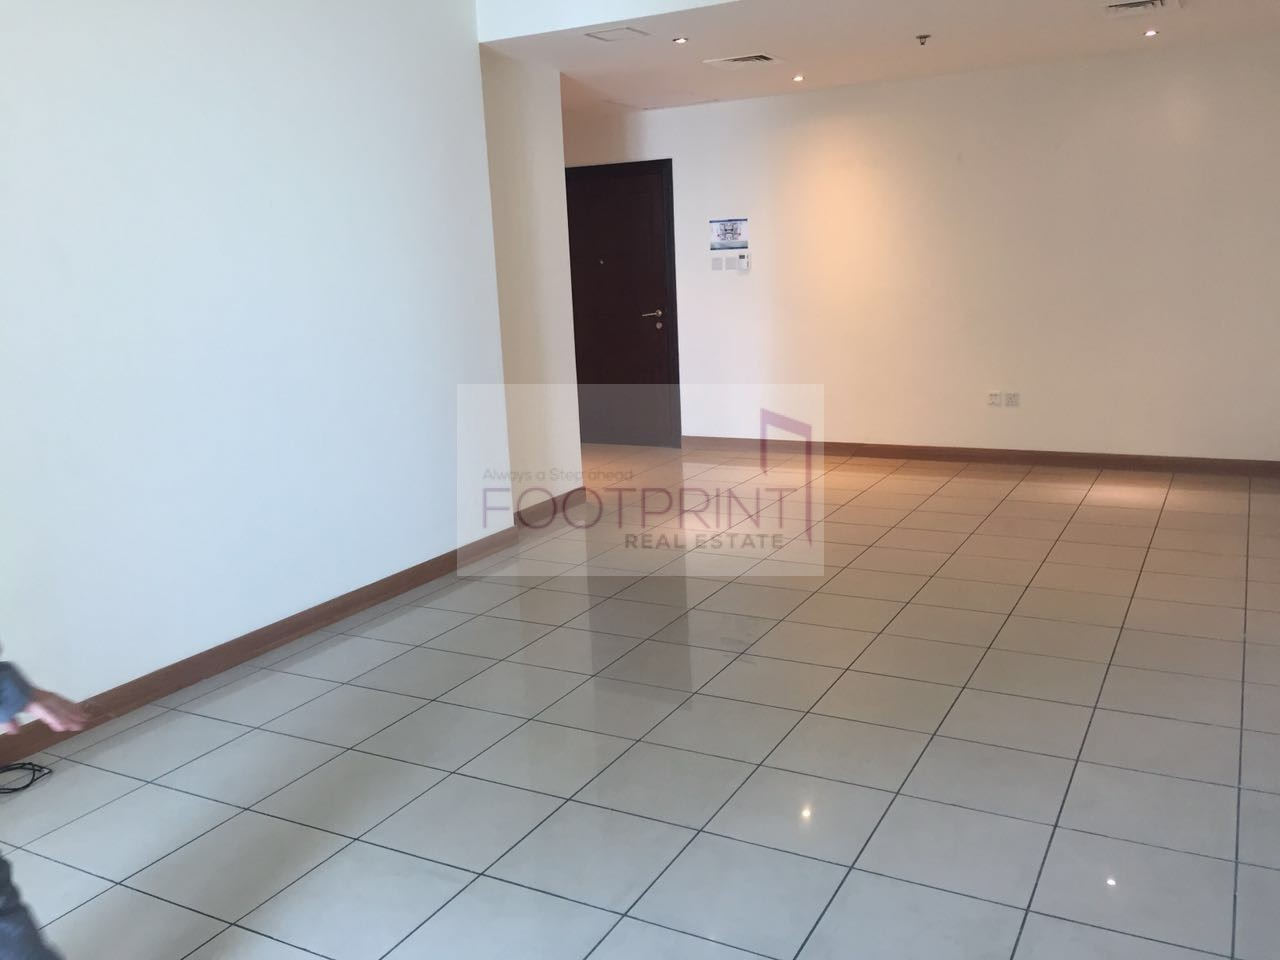 Cheapest Ever ! 3Br+M Unit On High Floor